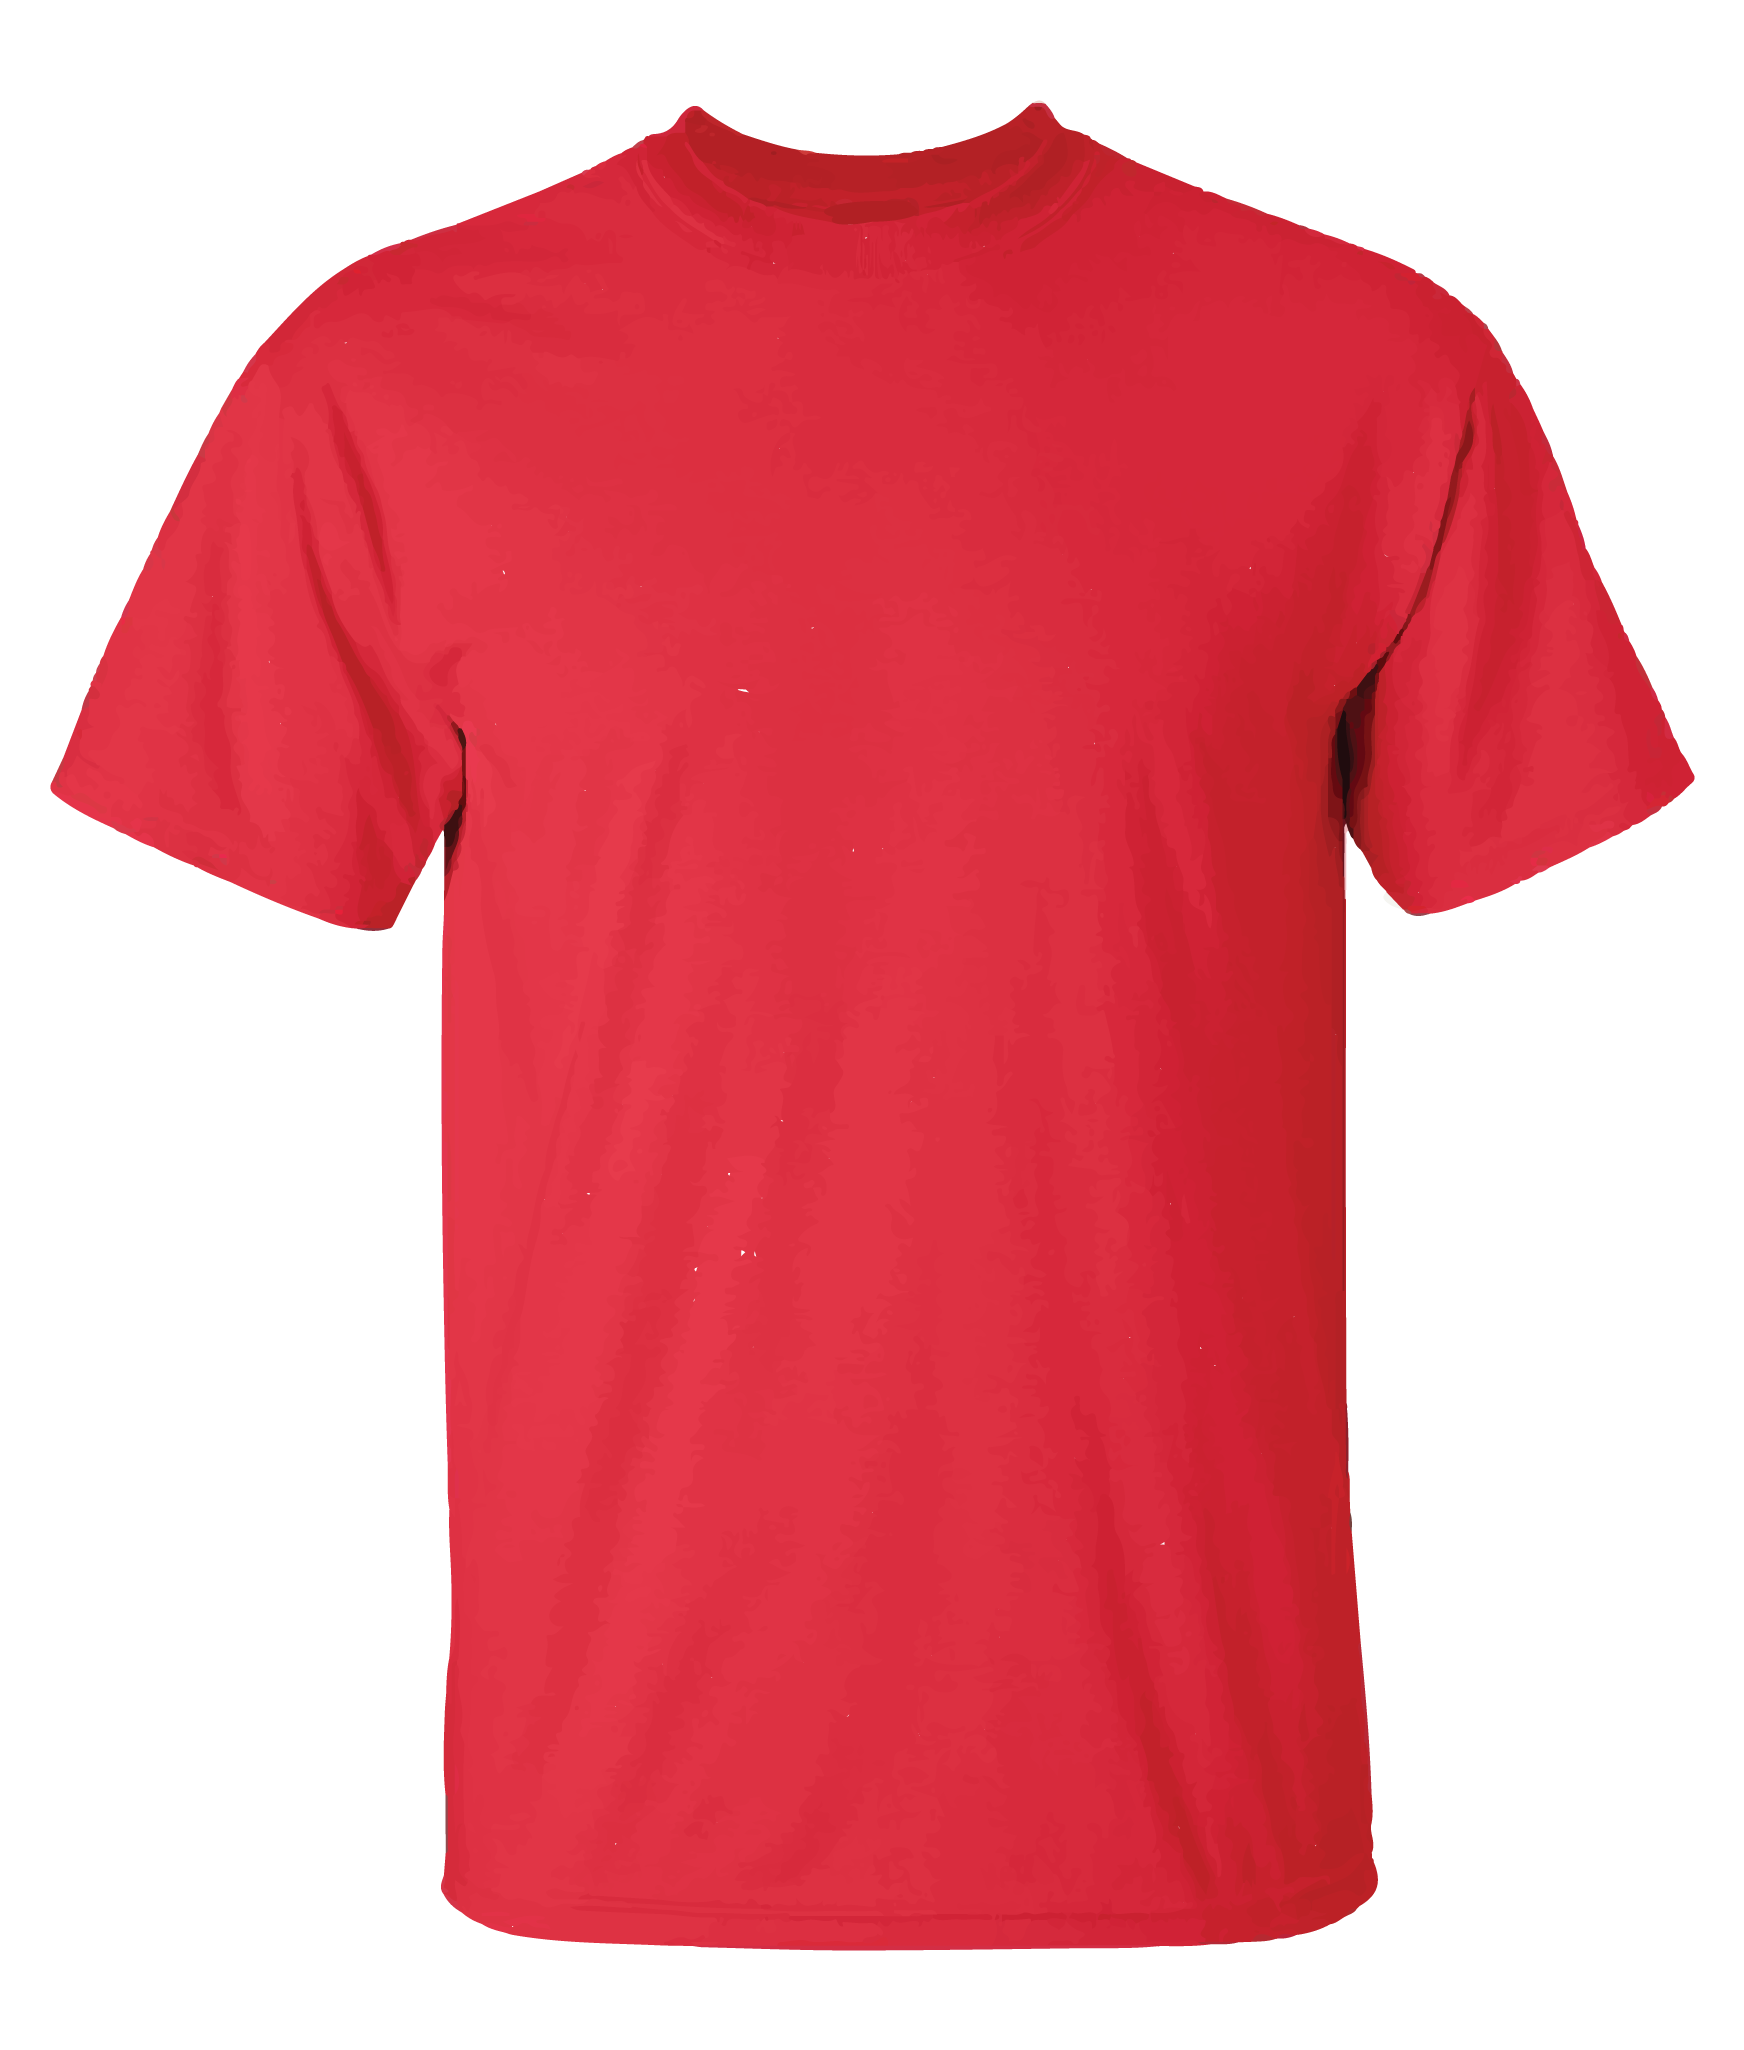 Red-t-shirt